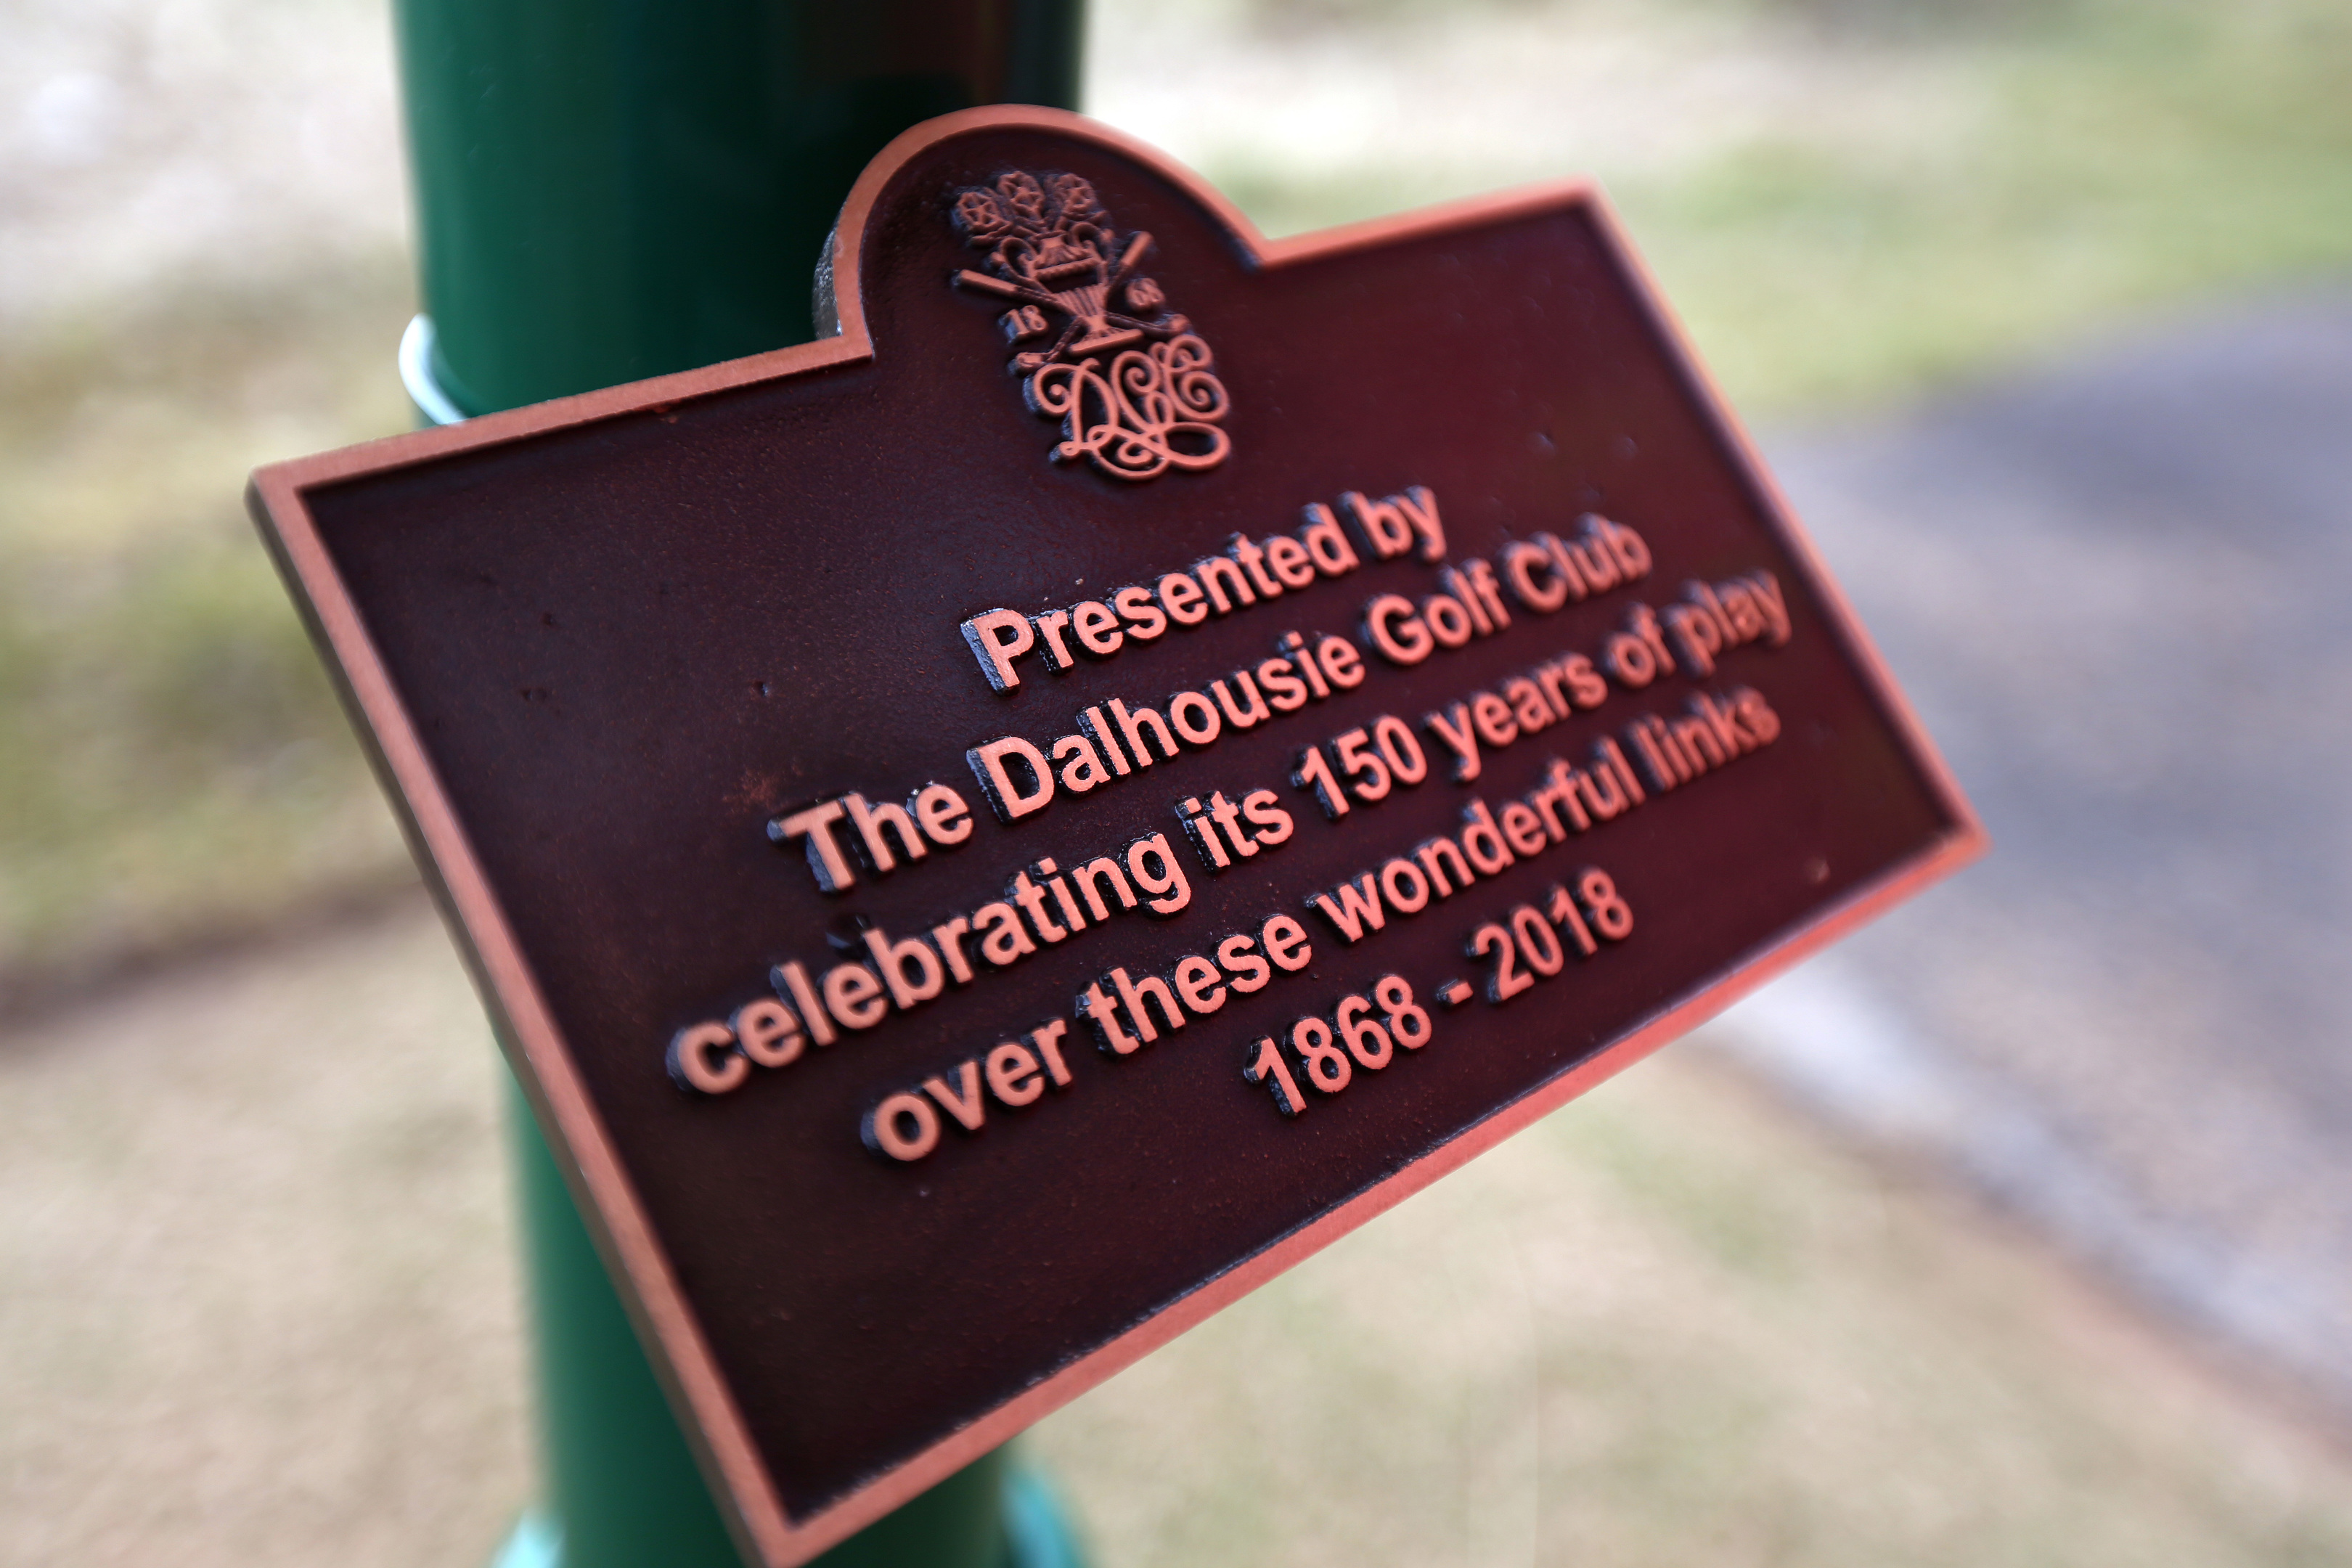 A plaque and water feature was placed on the 16th hole of the Championship course to mark the 150th anniversary of the club in March.